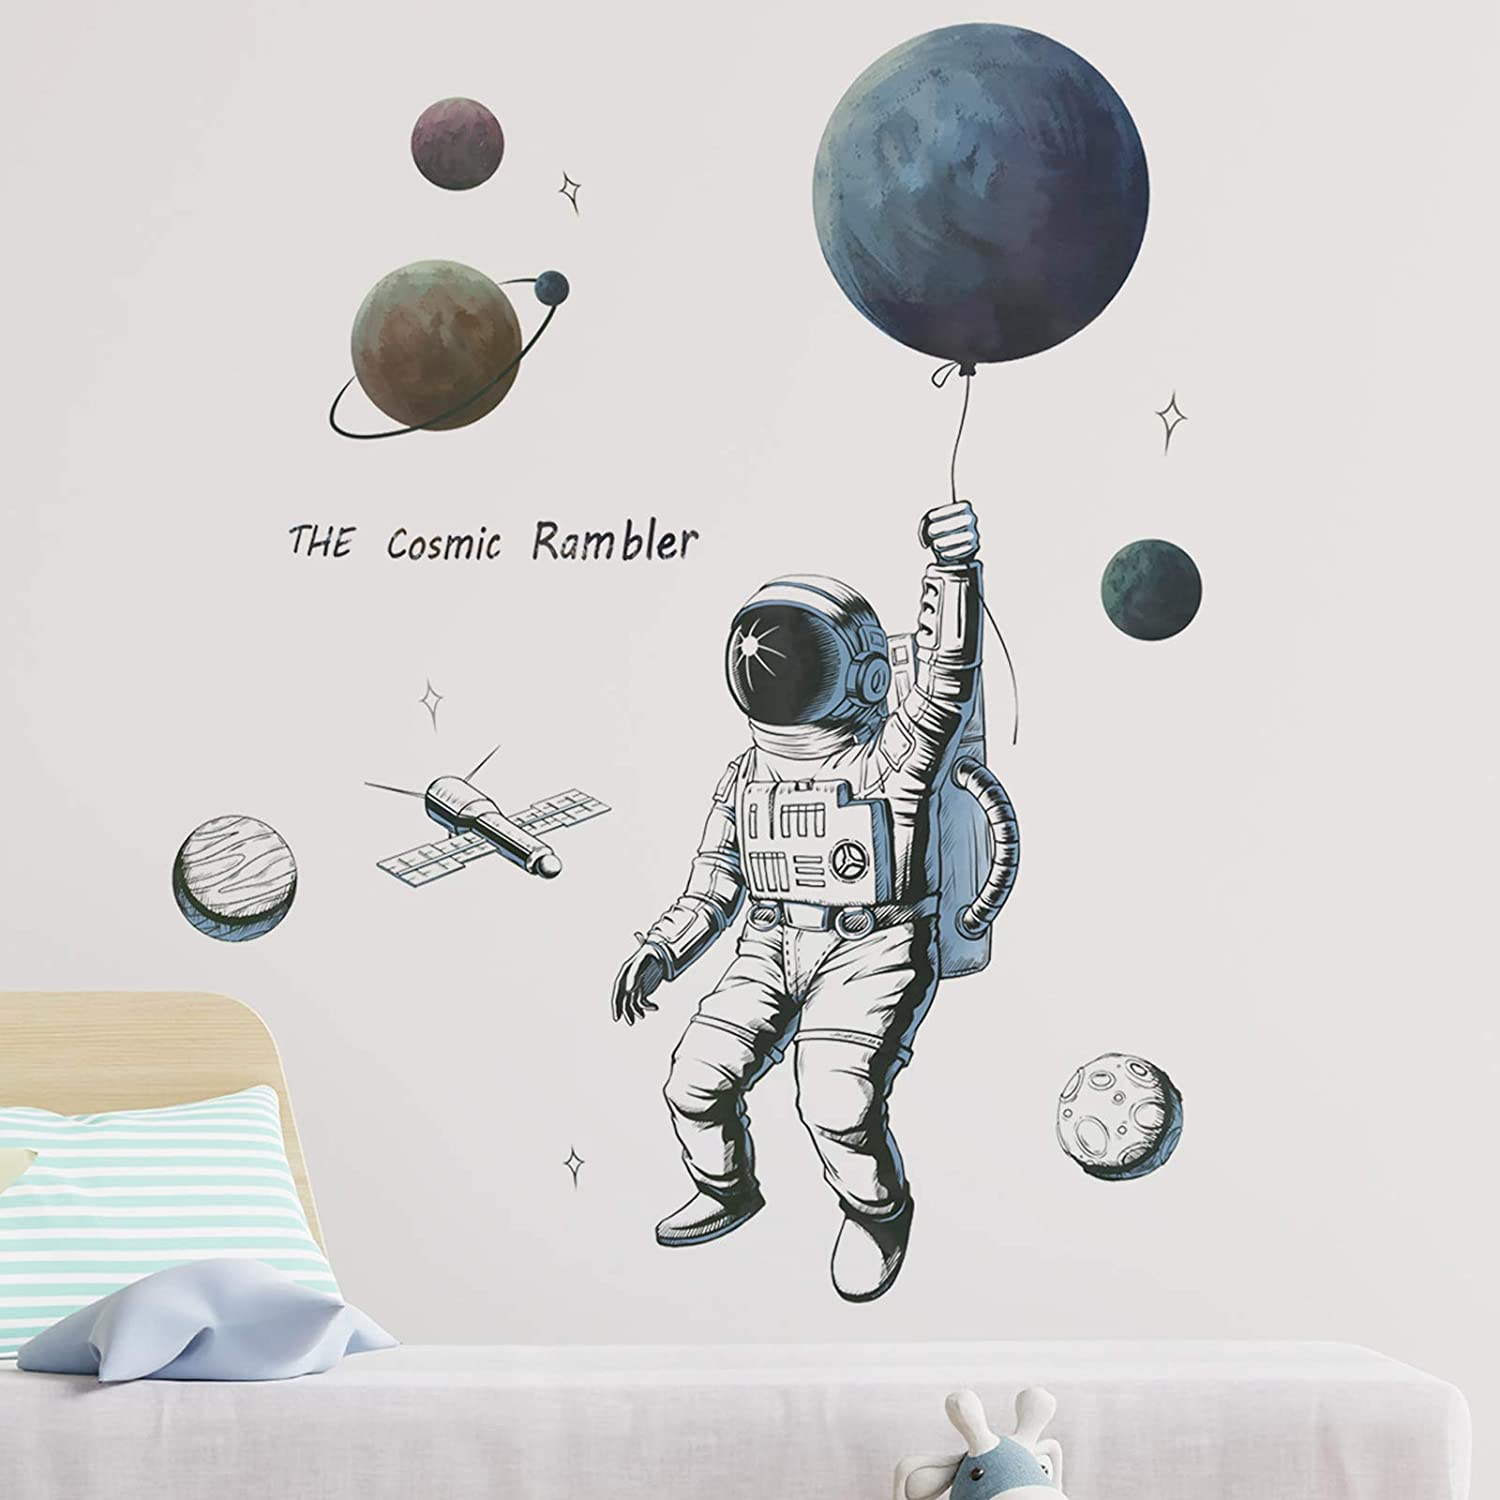 Astronaut Spaceman Wall Decals, HOLENGS Peel and Stick Outer Space Spaceship UFO Wall Stickers, Stars Planet Wall Decor for Kids Boys Explorer Living Room Bedroom Nursery Home Wall Decoration